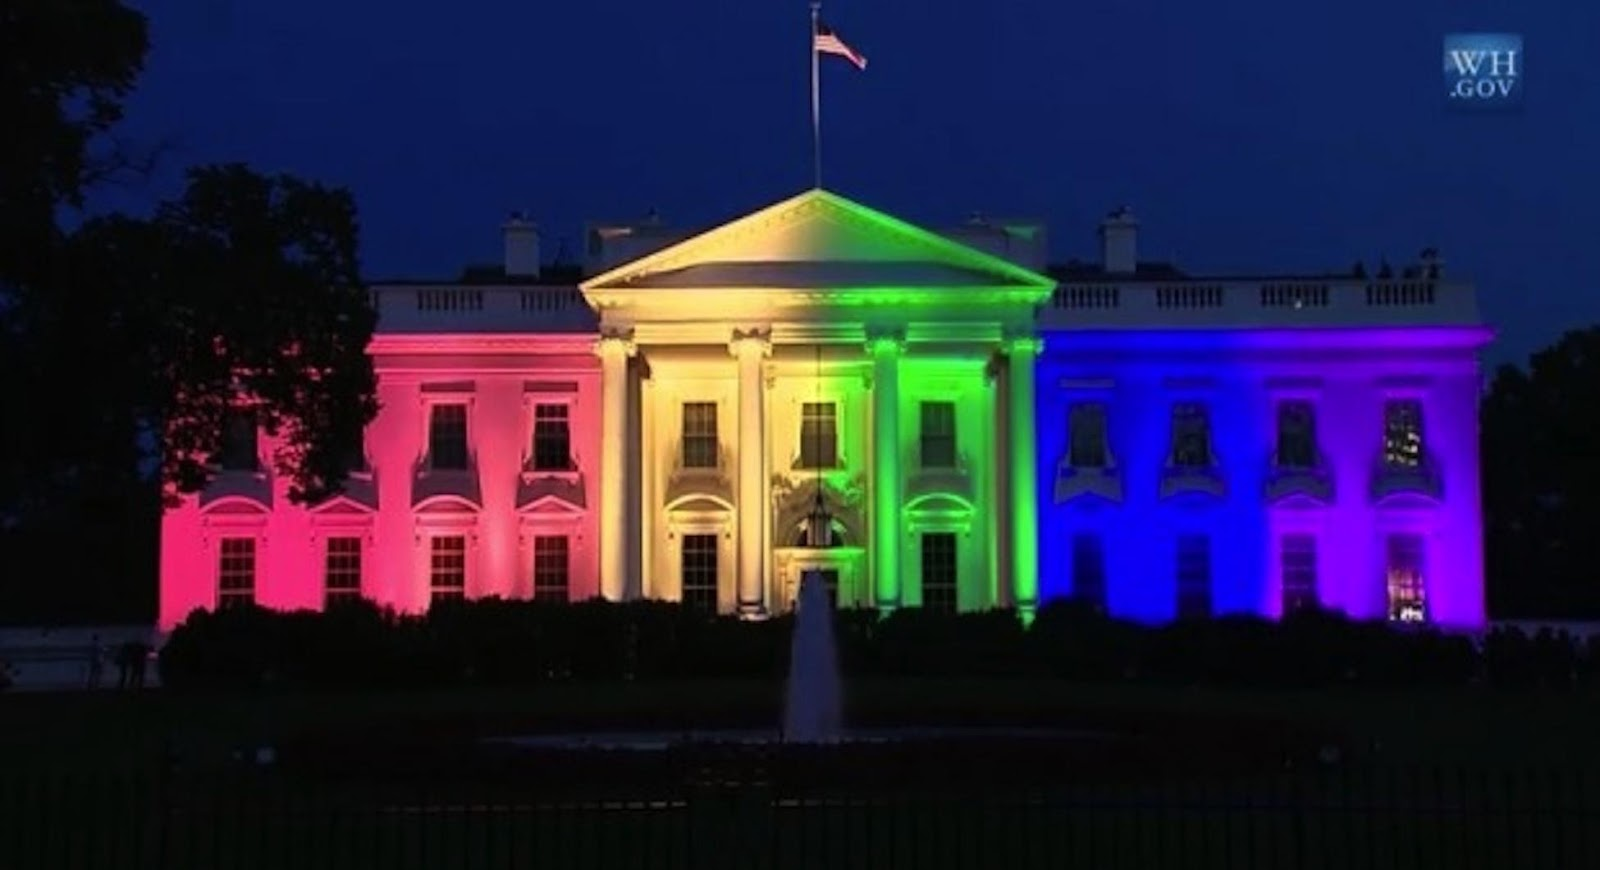 White House Rainbow Screen-Shot.jpg